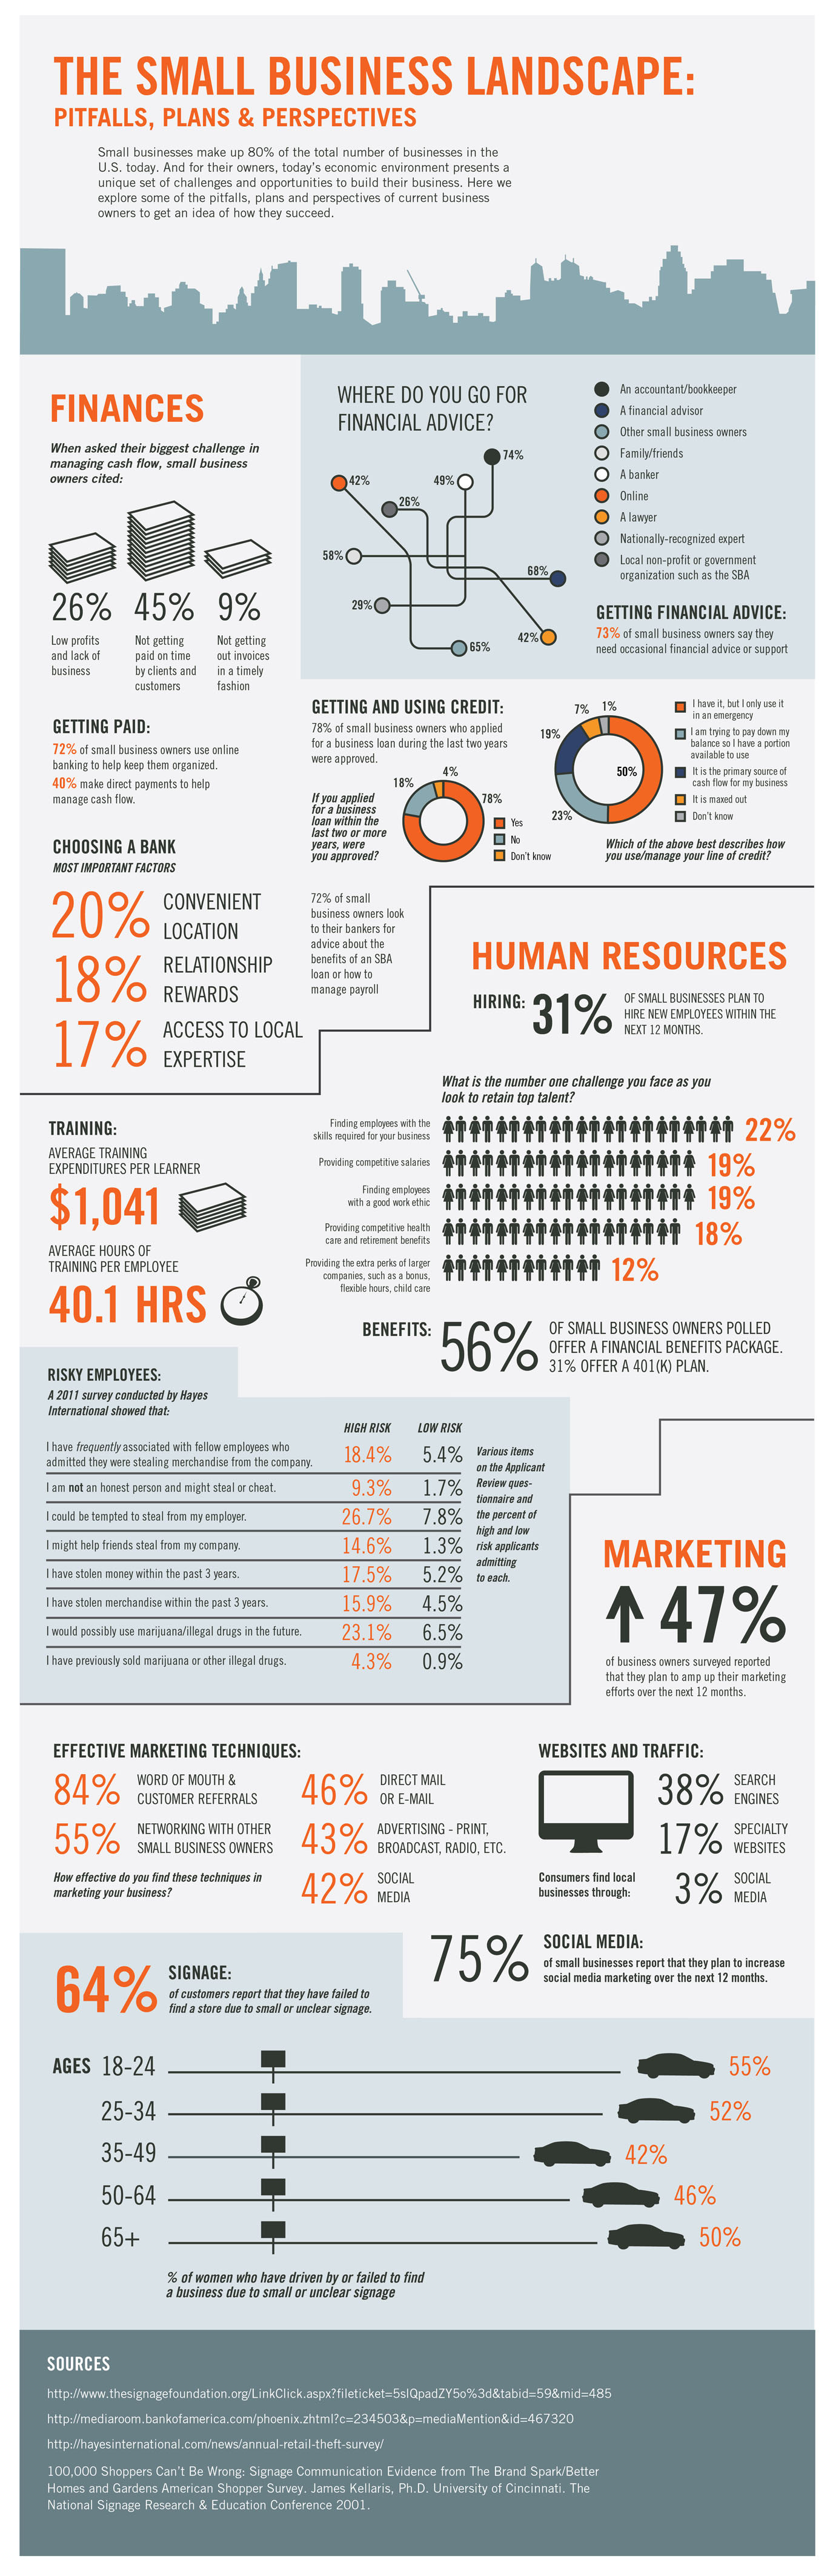 The Small Business Landscape